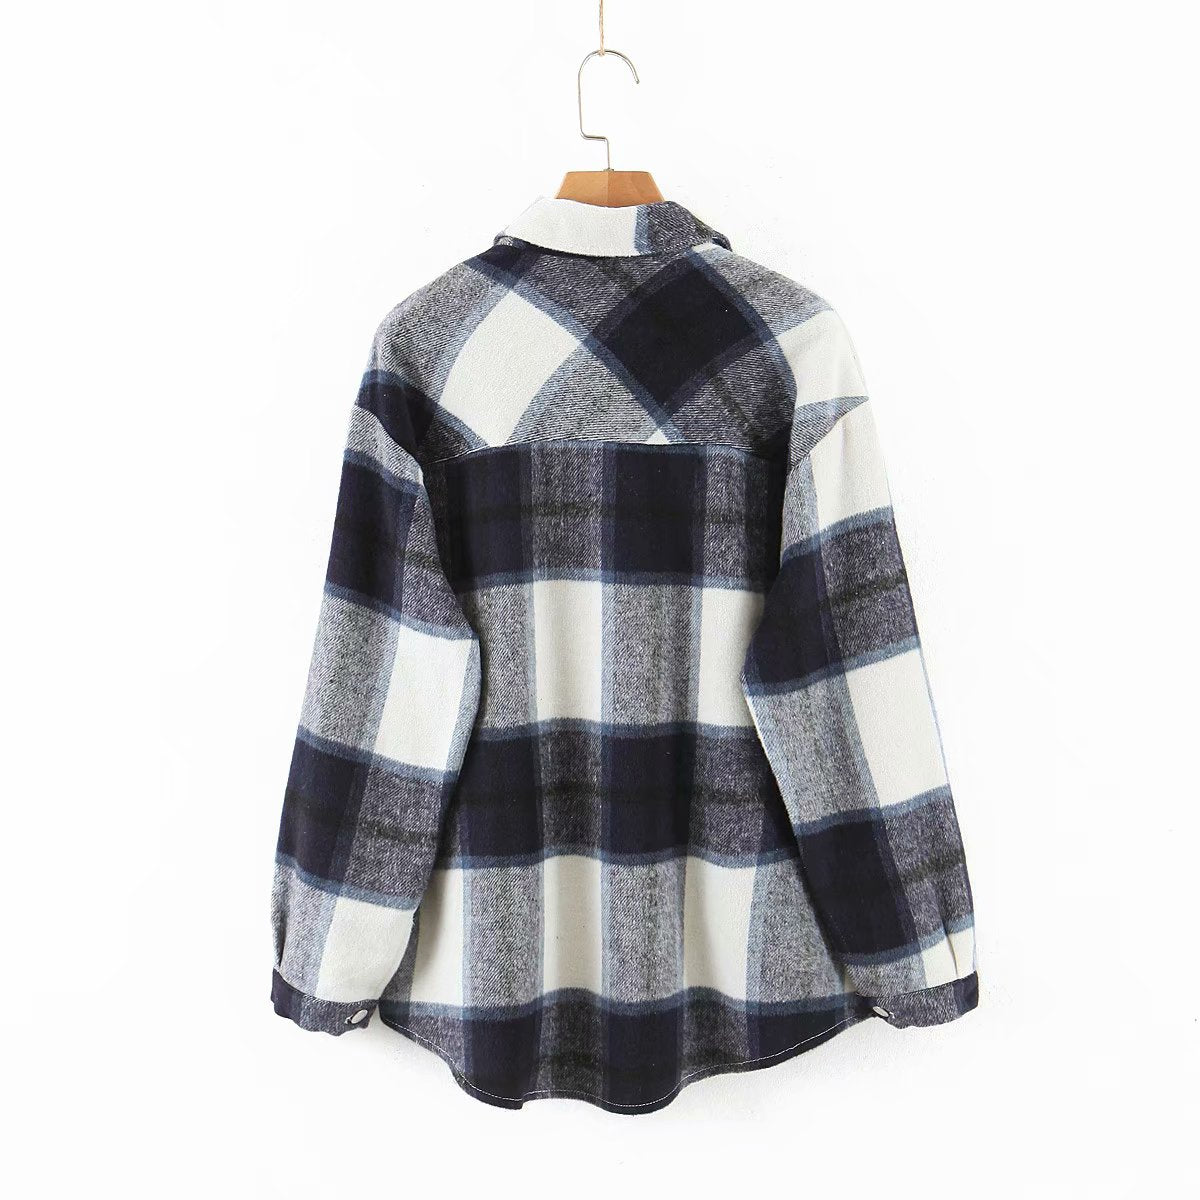 toppies vintage lattice shirt jackets womens loose single breasted coat 2020 spring plus size jackets